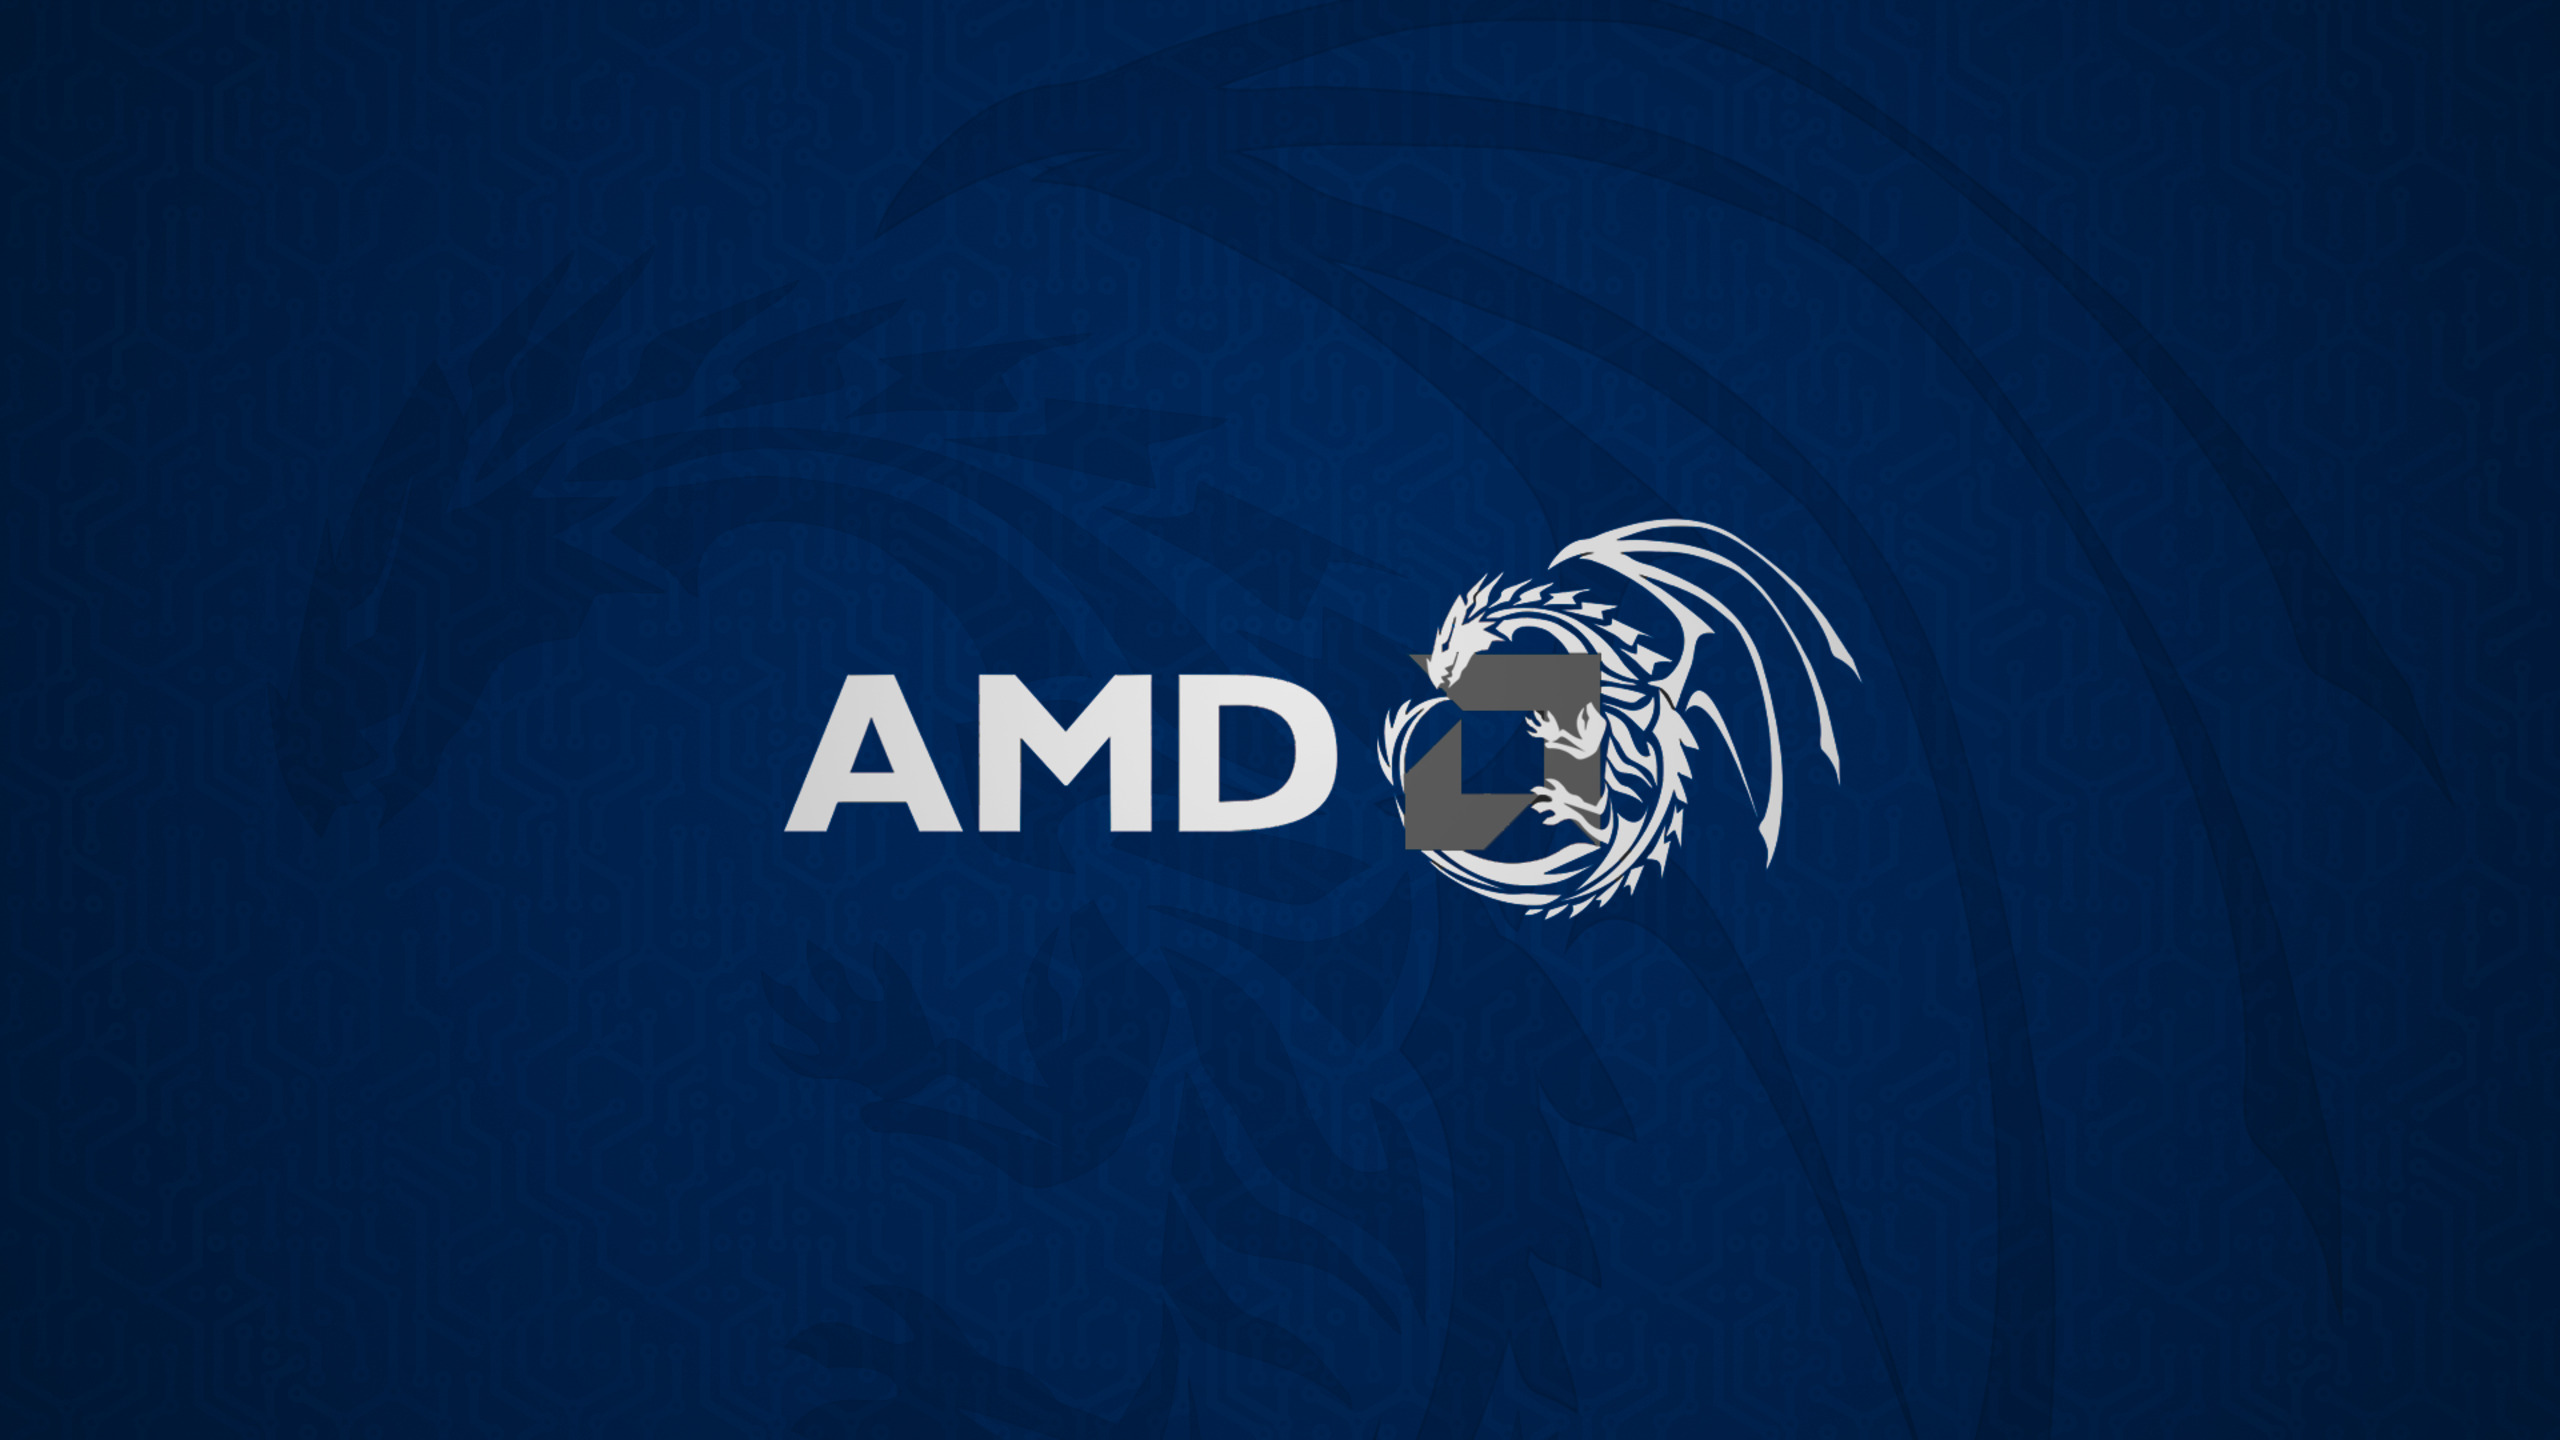 download amd dragon wallpapers - photo #2